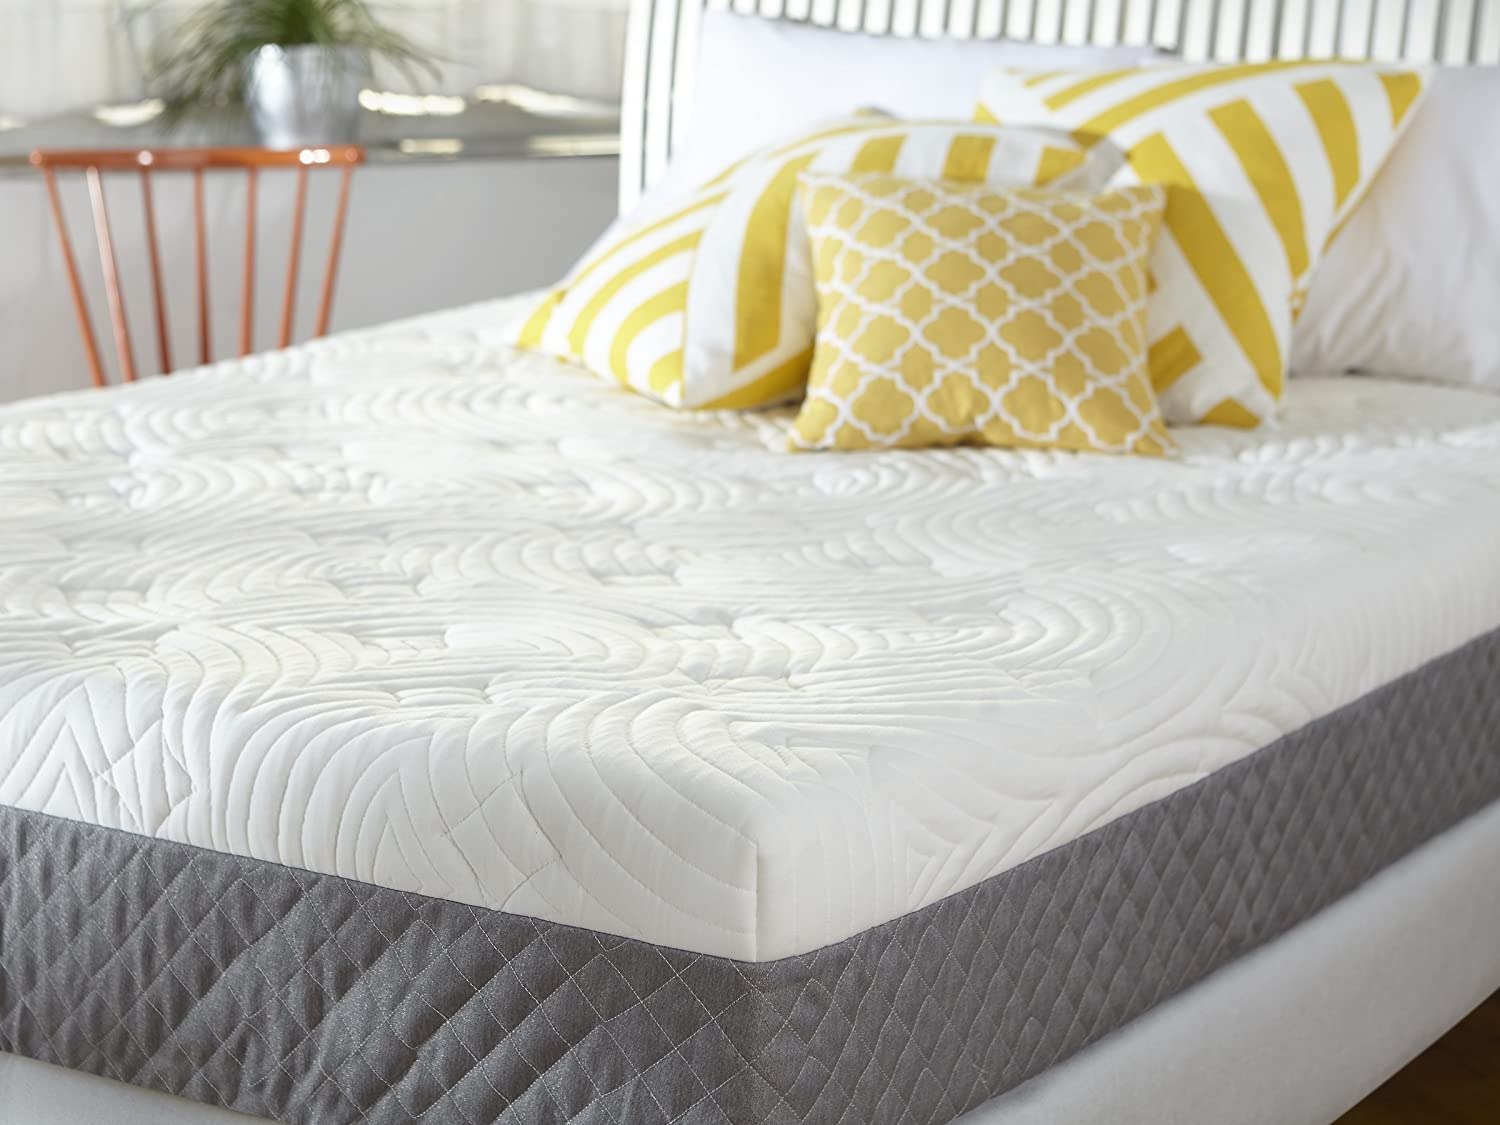 ... and a thick foam base which provides support to your body weight. The Sleep  Innovations 10-inch Mattress has a soft cushioned poly-cotton blend cover.